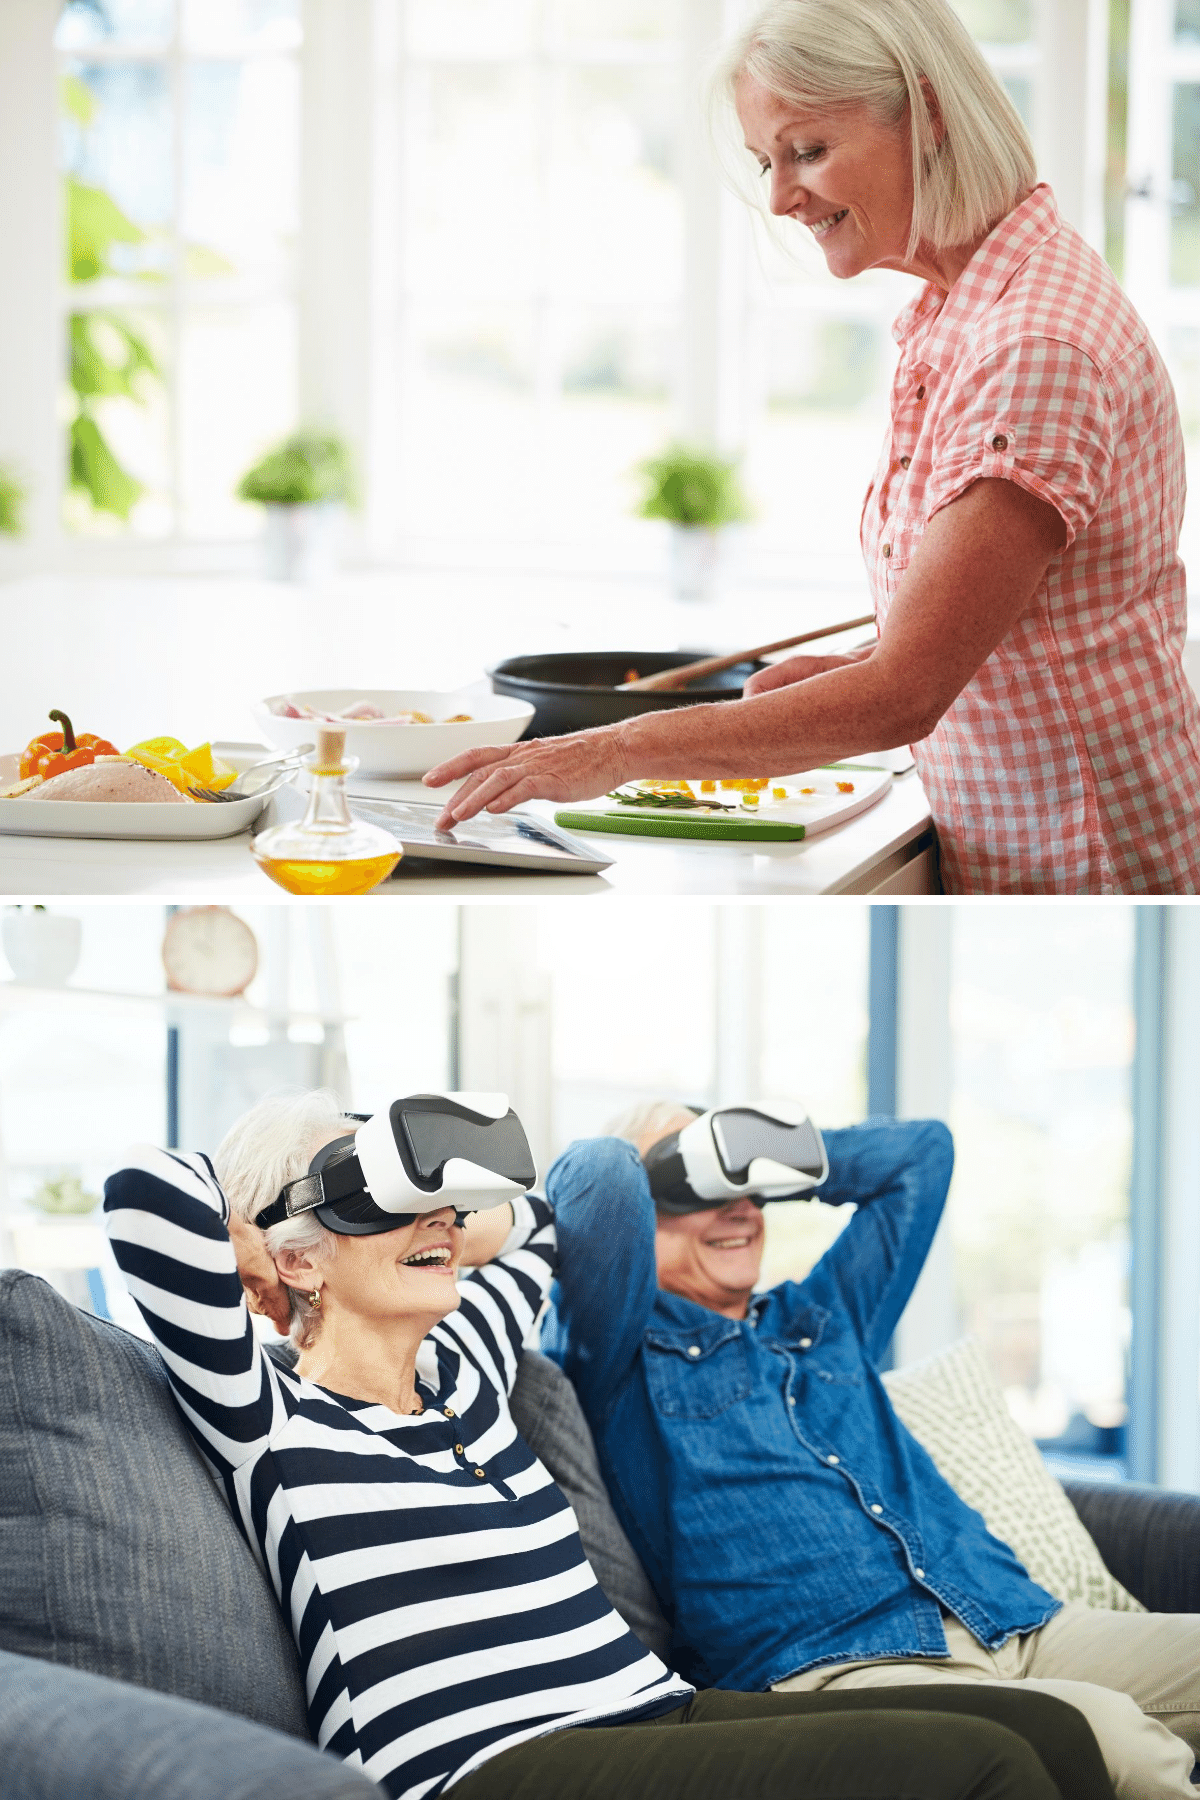 Cooking along with a tablet and taking a virtual vacation.